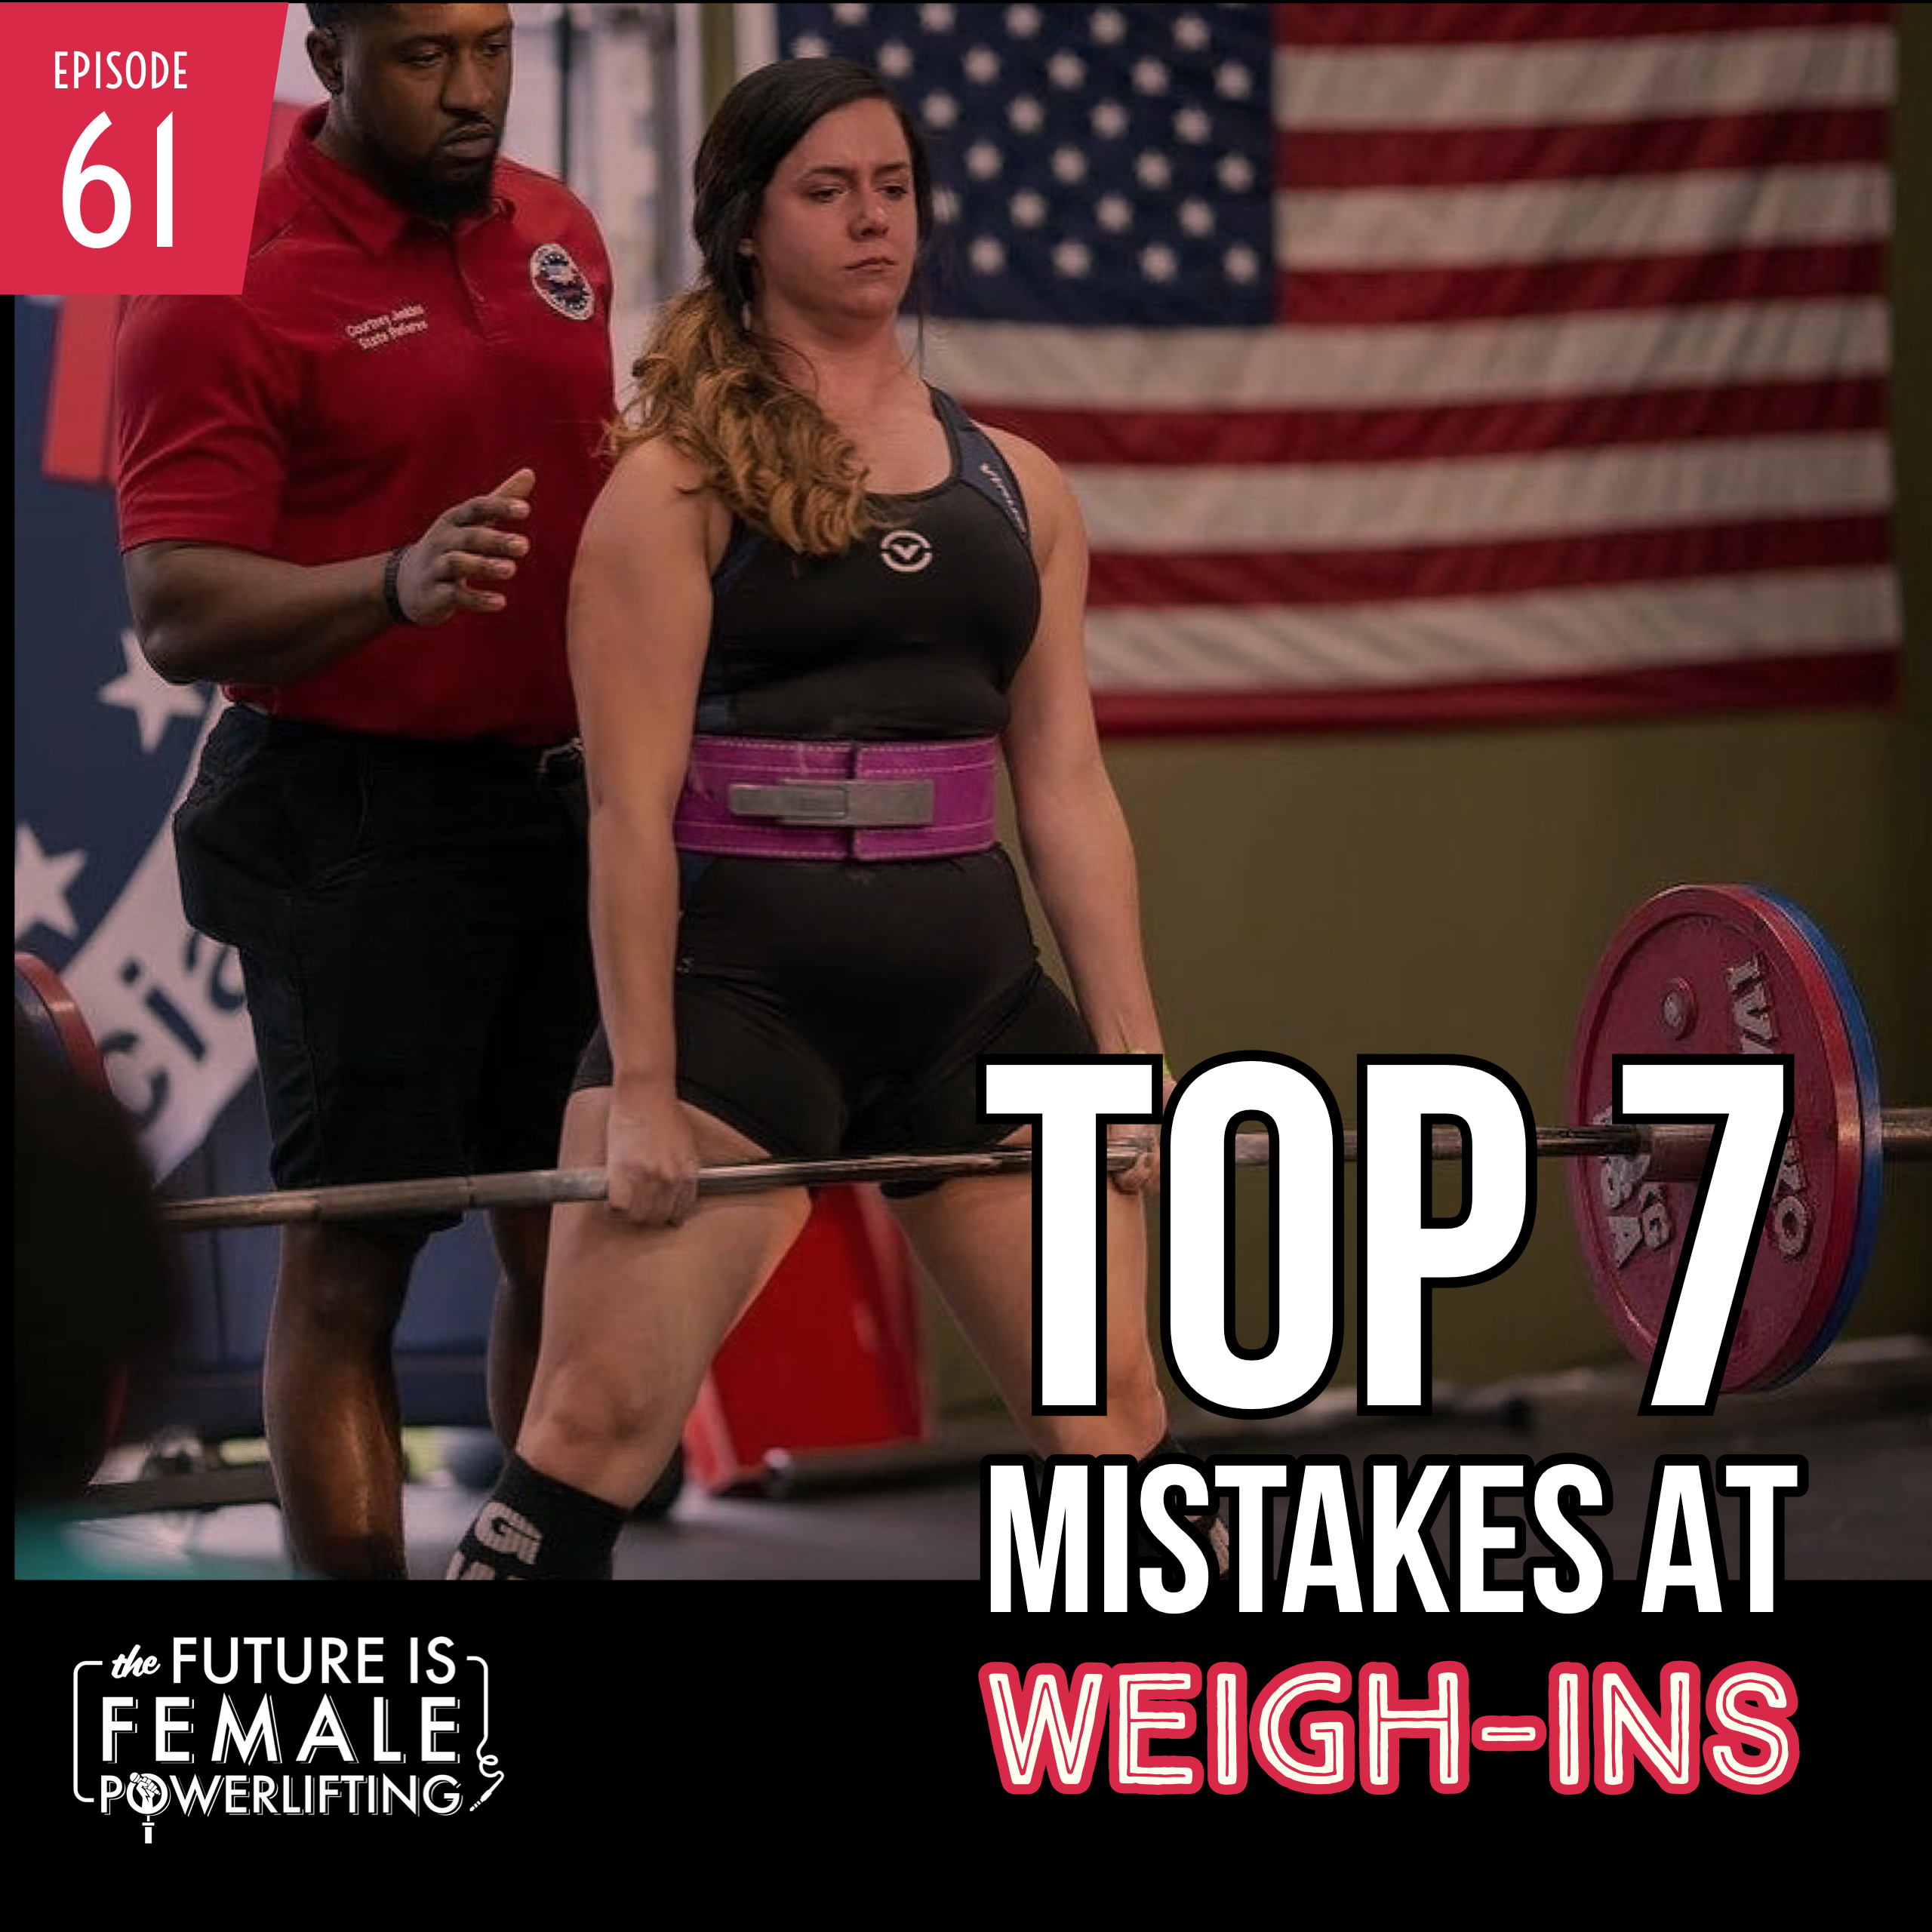 Top 7 Mistakes Made At Weigh-Ins